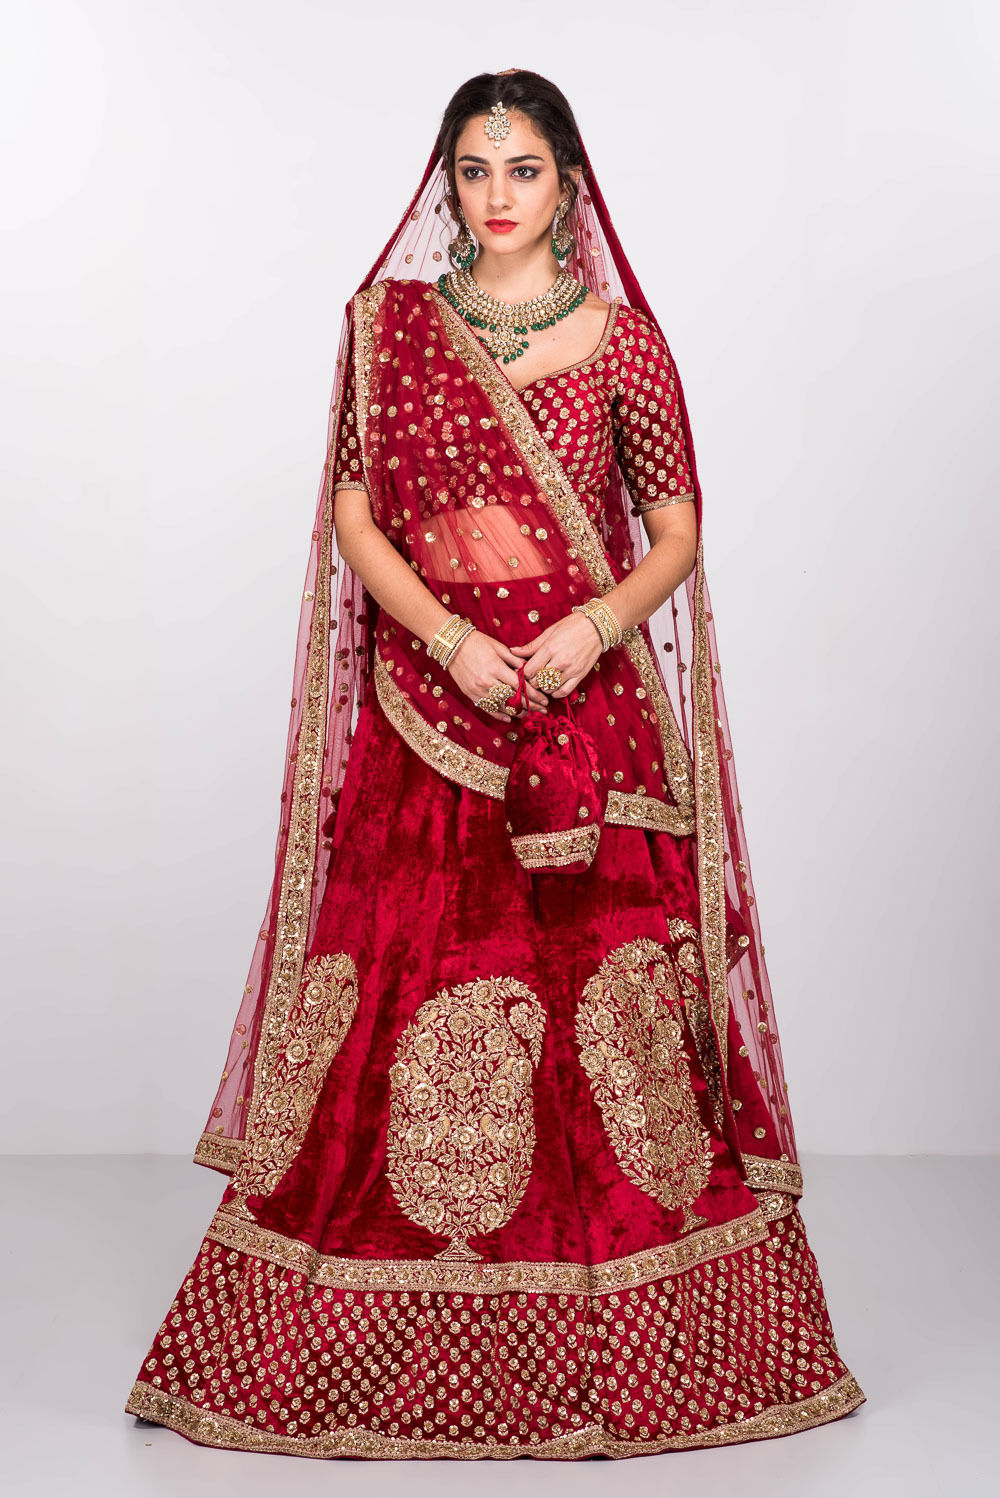 7238921a4fcf What do Sabyasachi outfits really cost  - Frugal2Fab